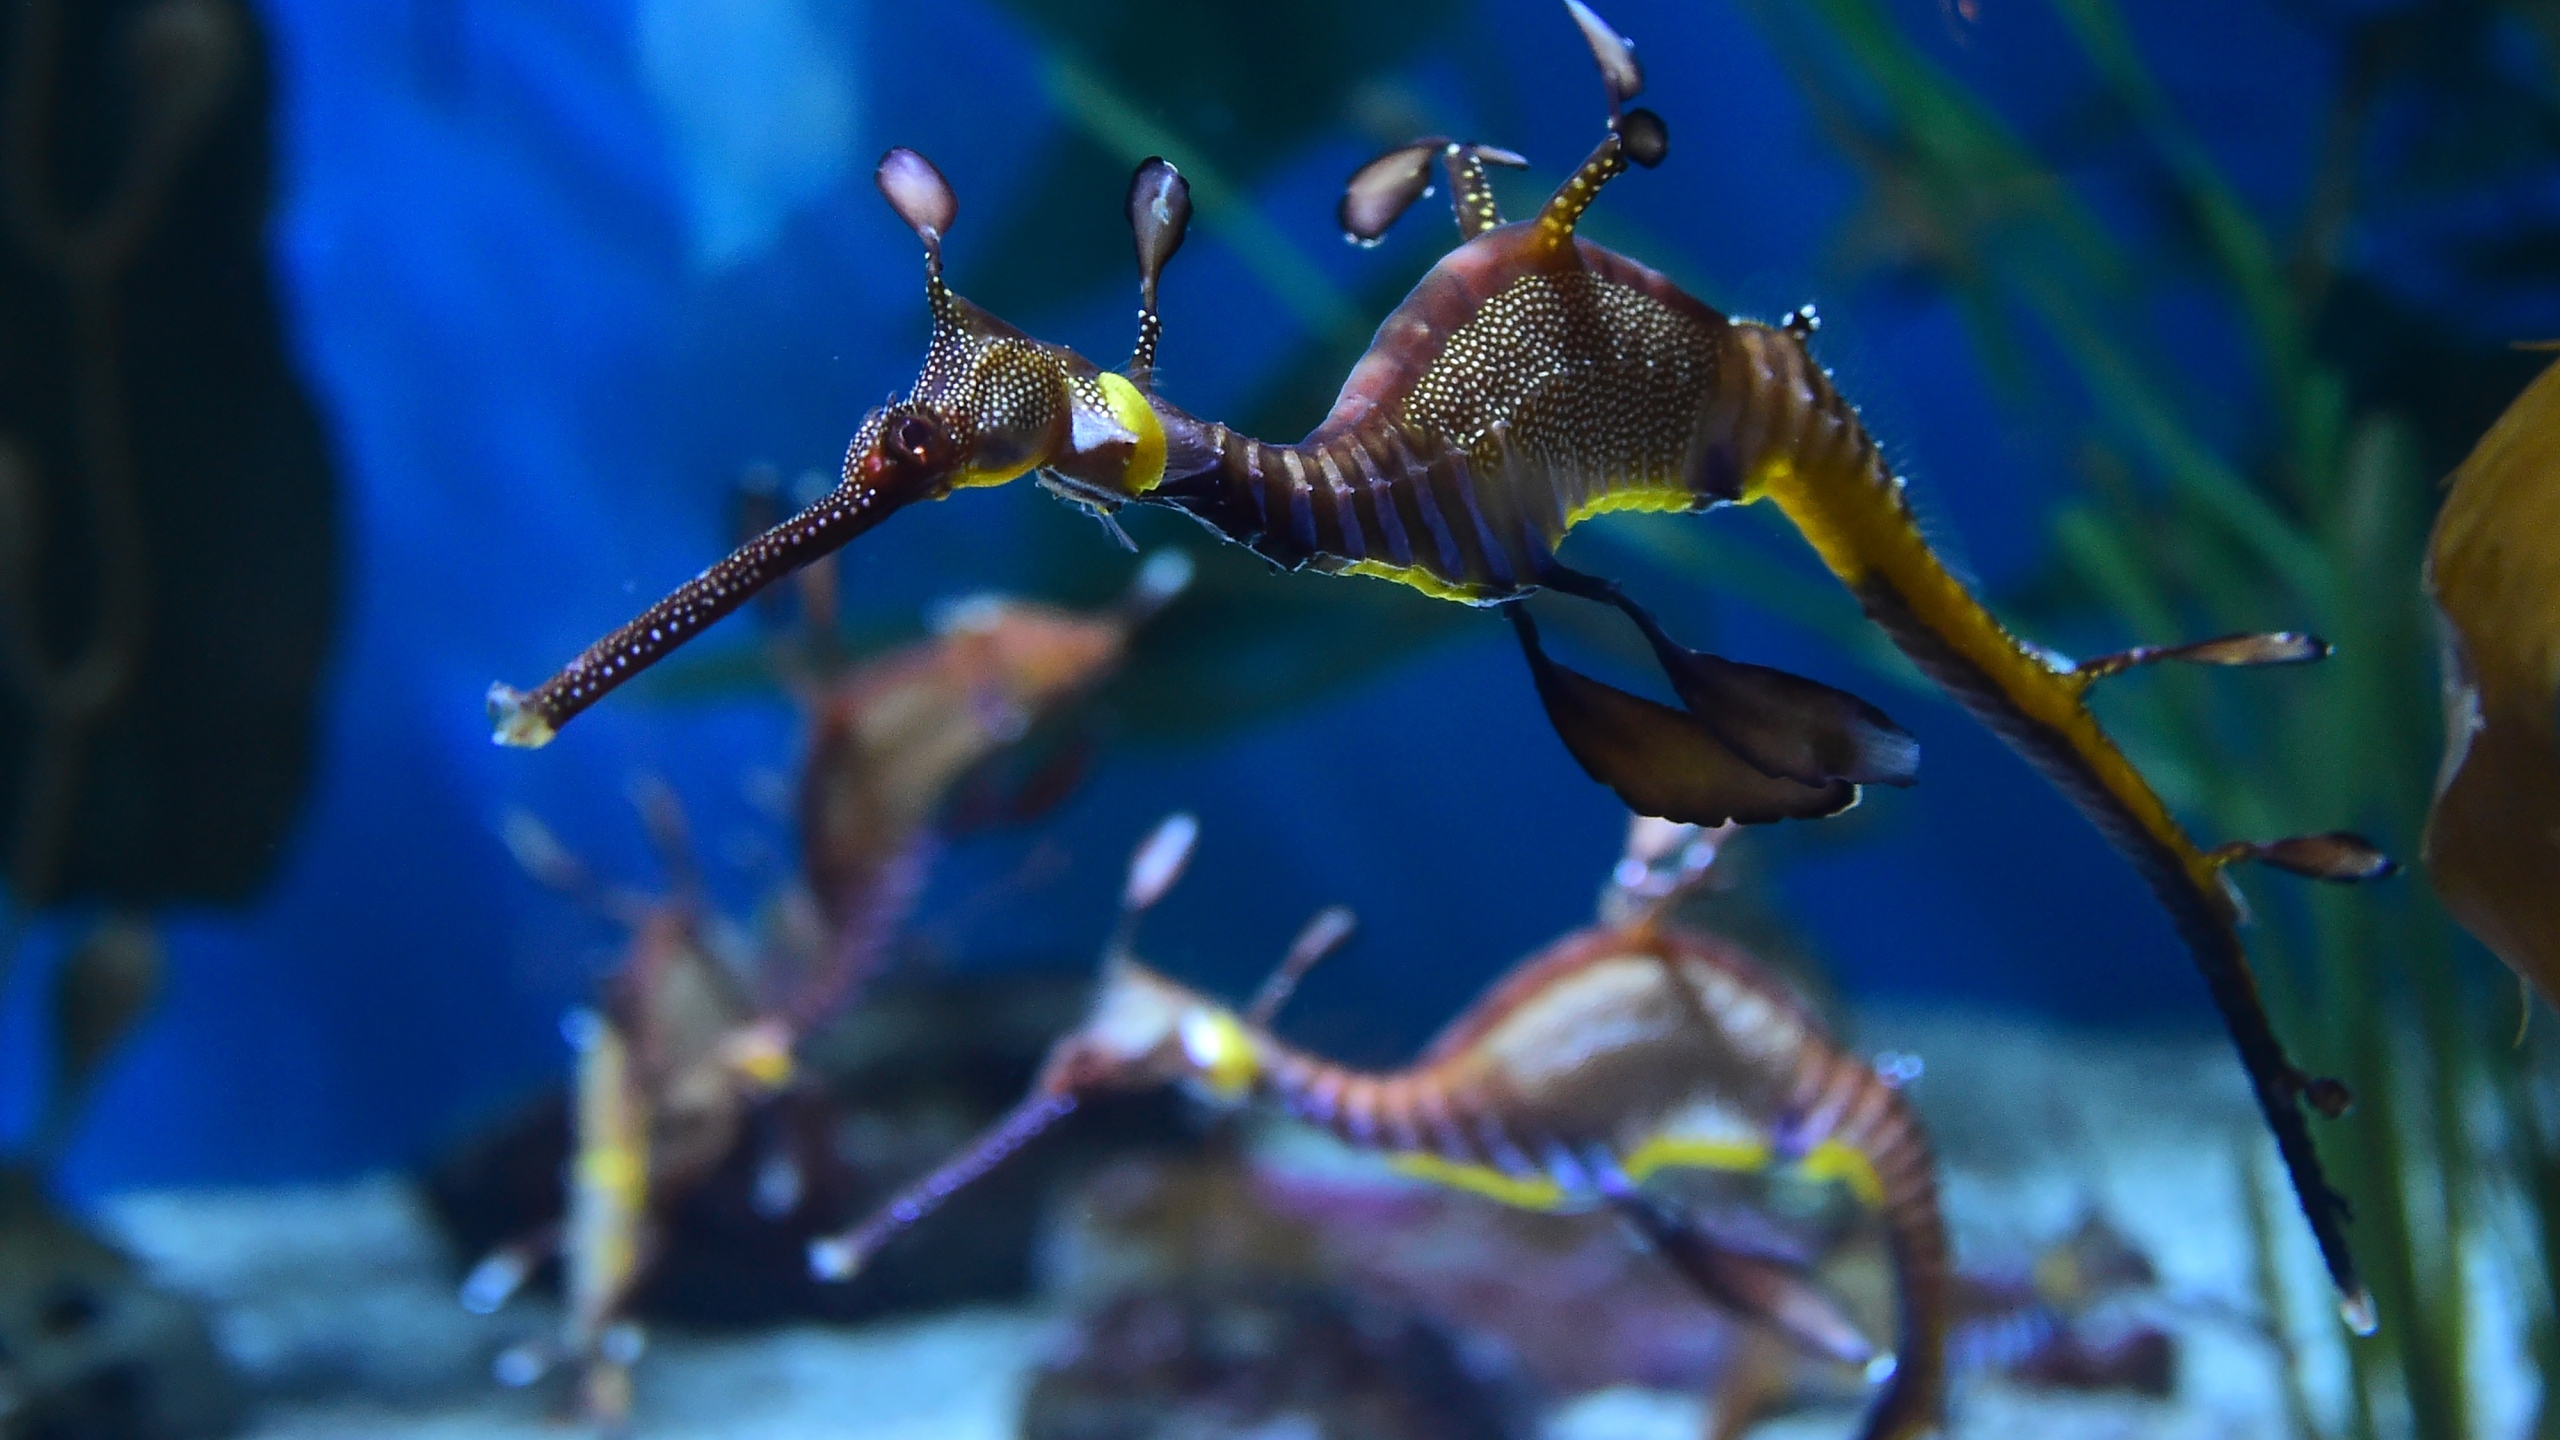 A weedy seadragon is seen at the Aquarium of the Pacific in Long Beach, California on May 26, 2016. (Credit: FREDERIC J. BROWN/AFP/Getty Images)